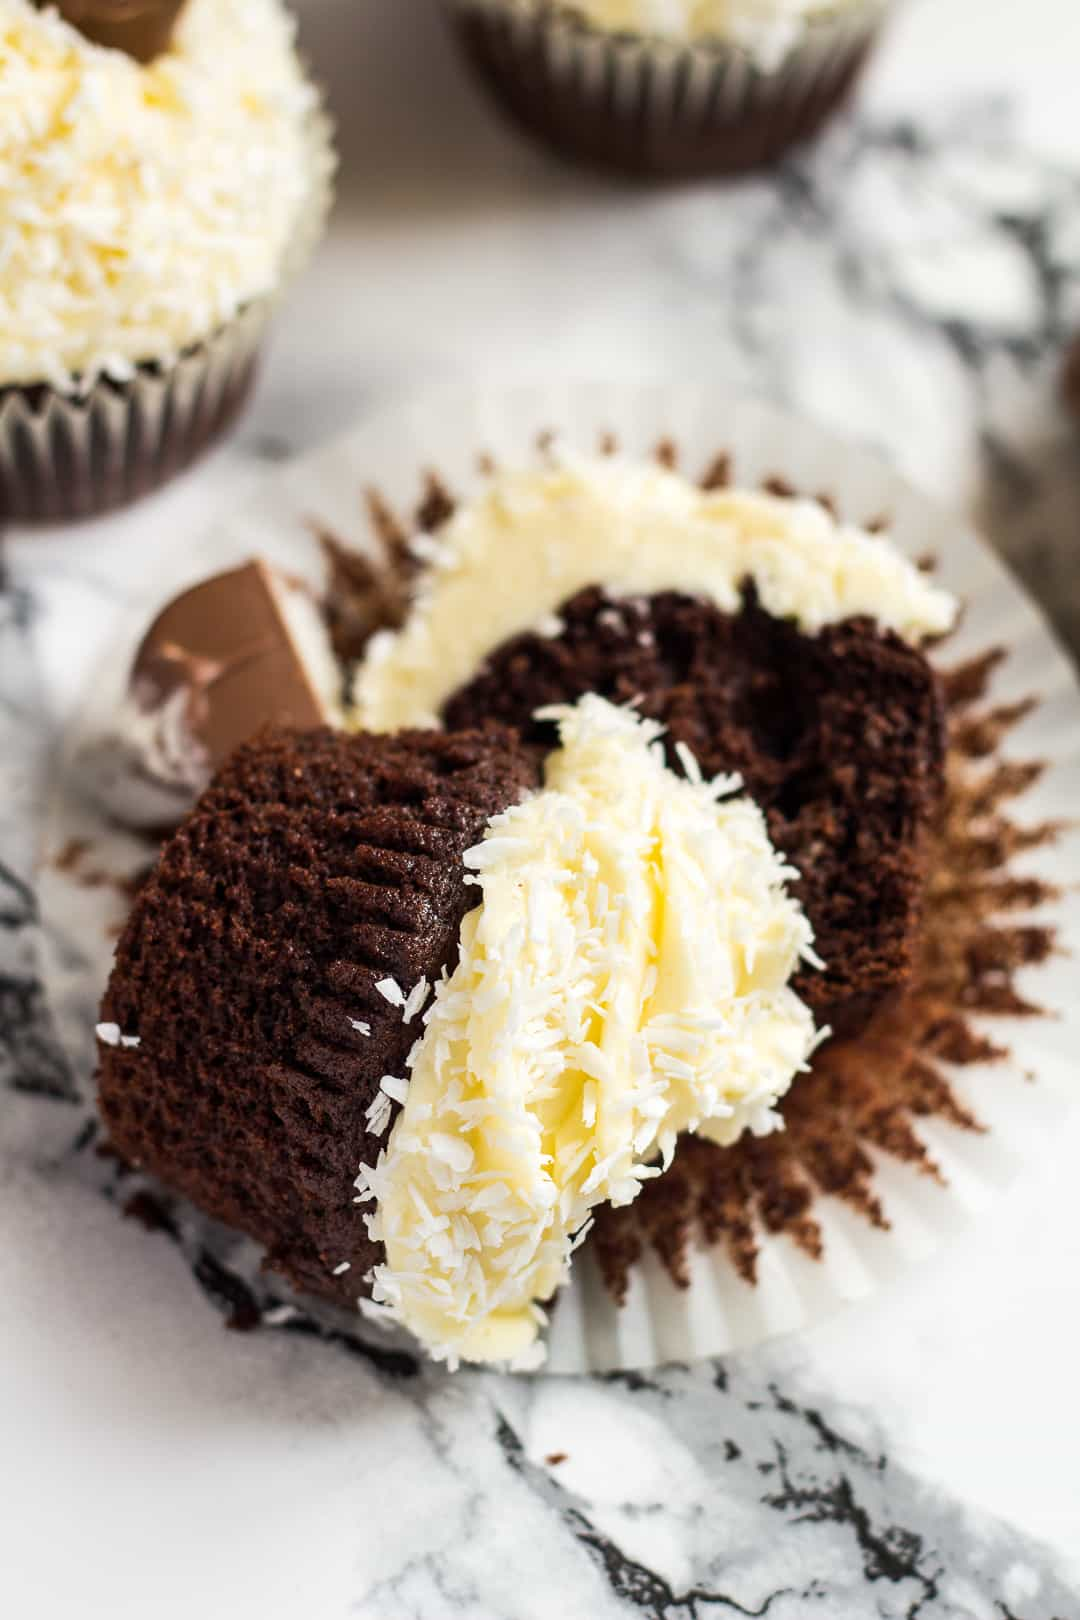 A frosted chocolate coconut cupcake sliced in half on top of wrapper.